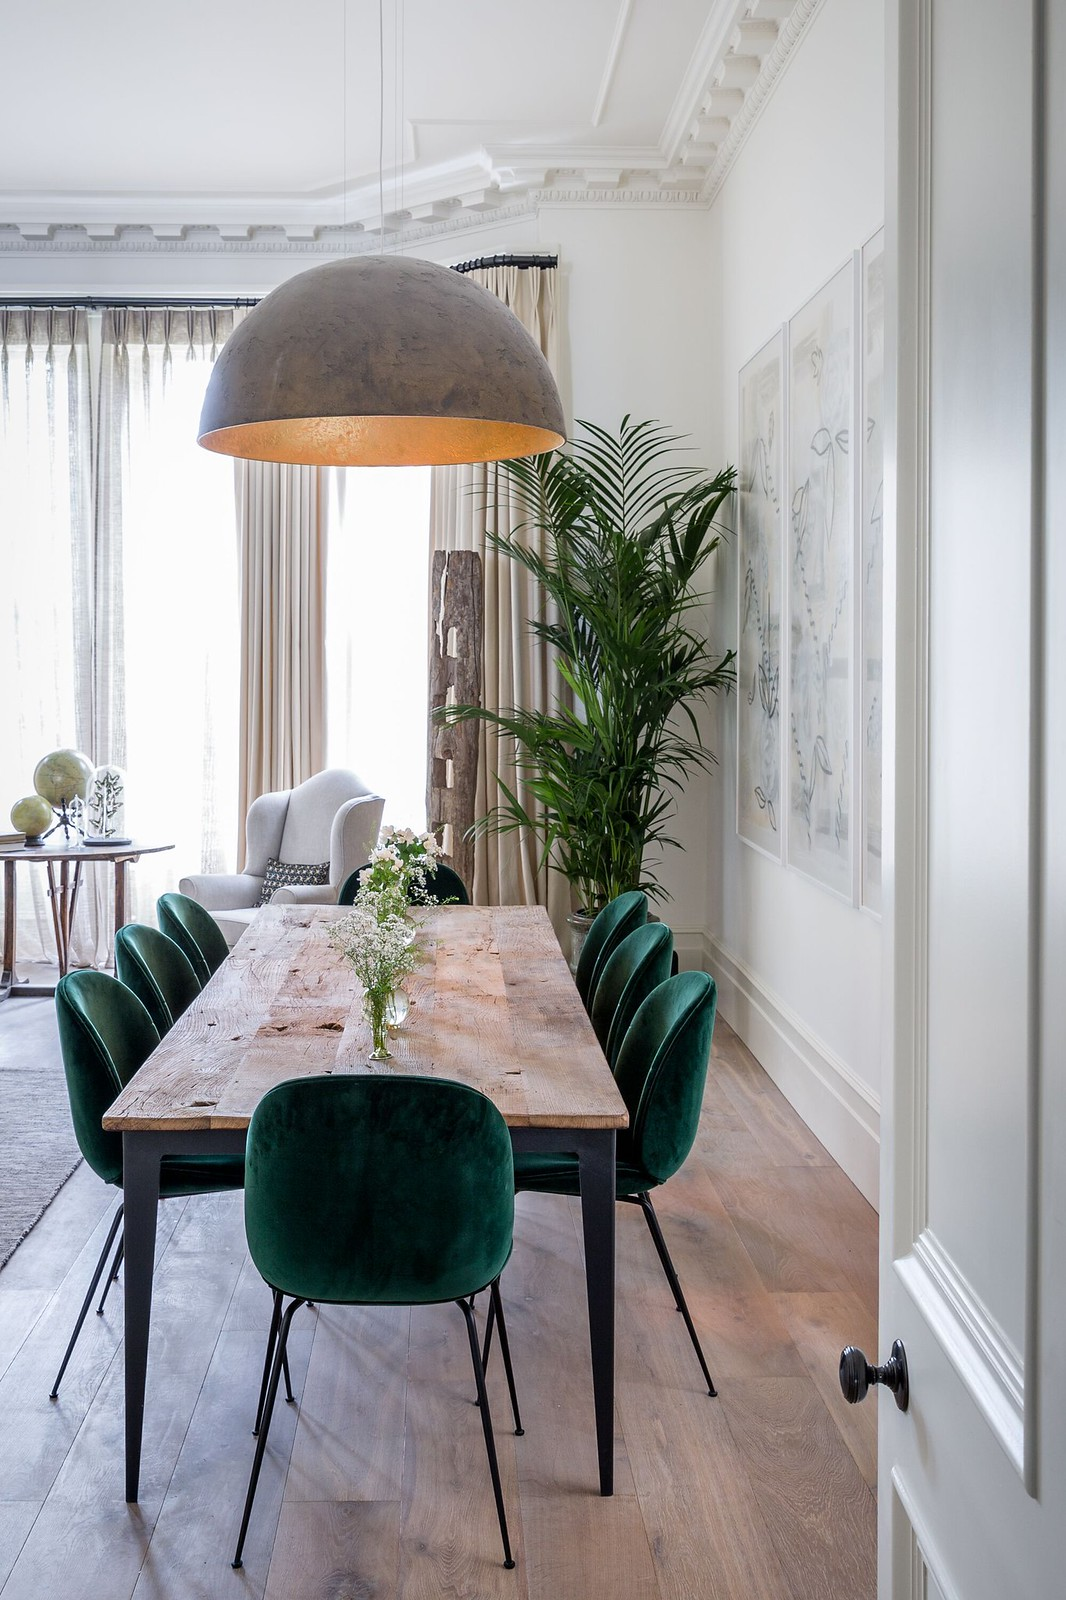 Parisian Style Dining Room | Emerald Green Velvet Chairs | Velvet Dining Room Chairs | Velvet Dining Chairs | Dining Room Inspiration | Dining Room Ideas | Dining Room Decor | Open Concept Living Room Dining Room Idea